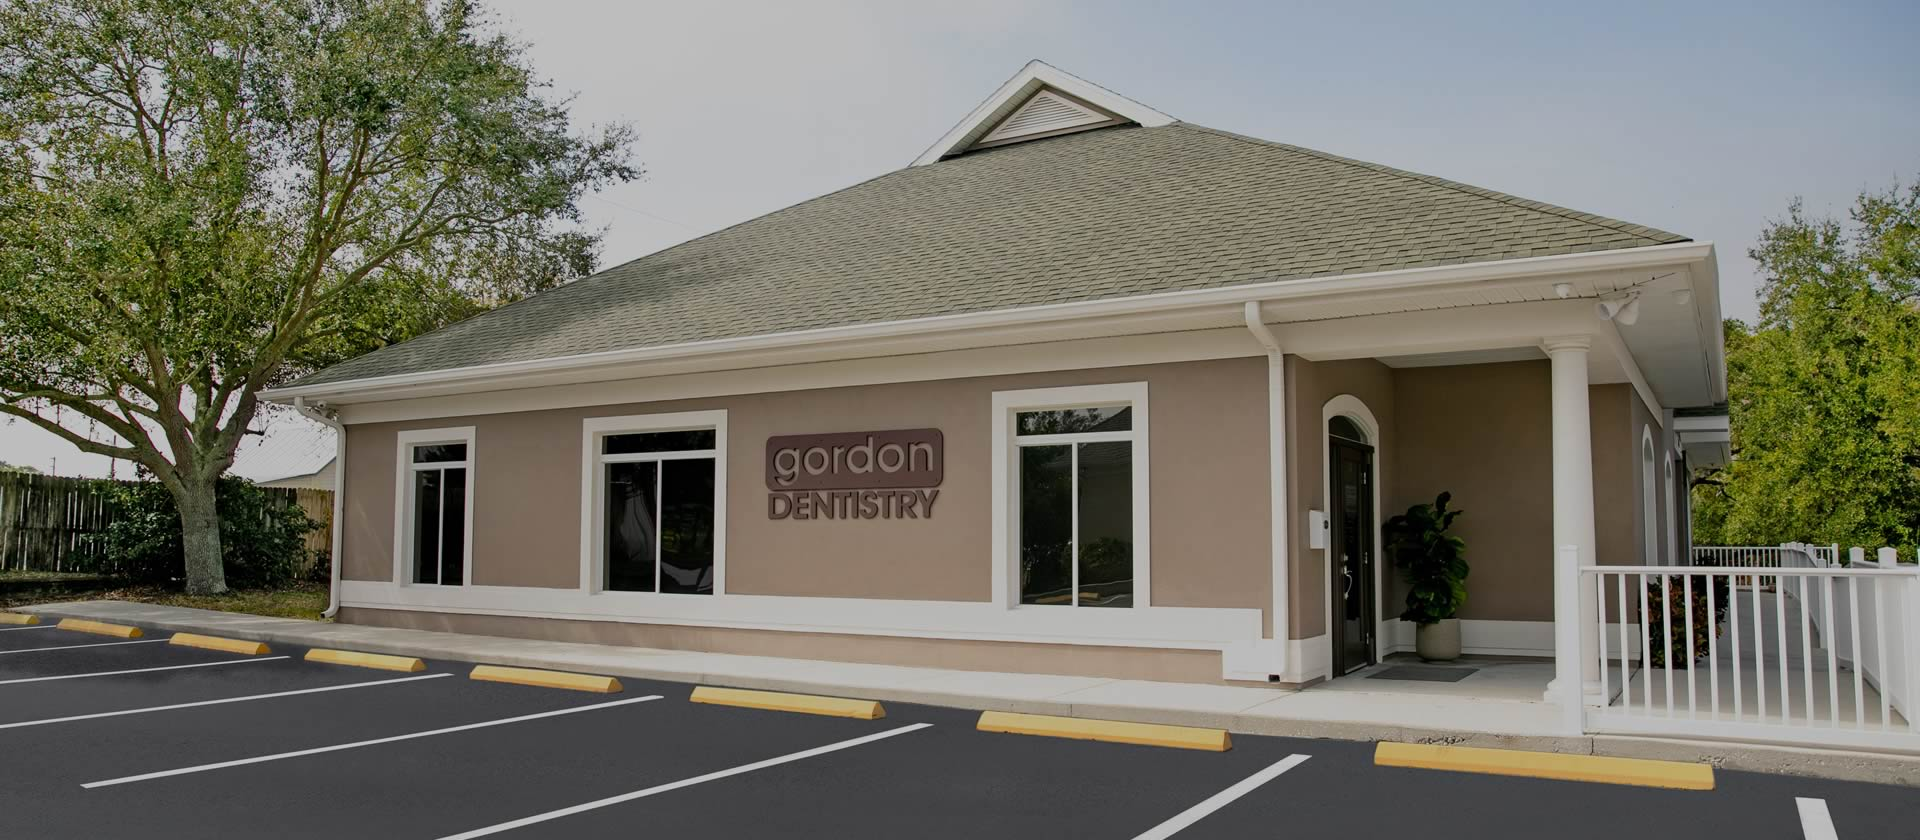 Gordon Dentistry Office - Welcome